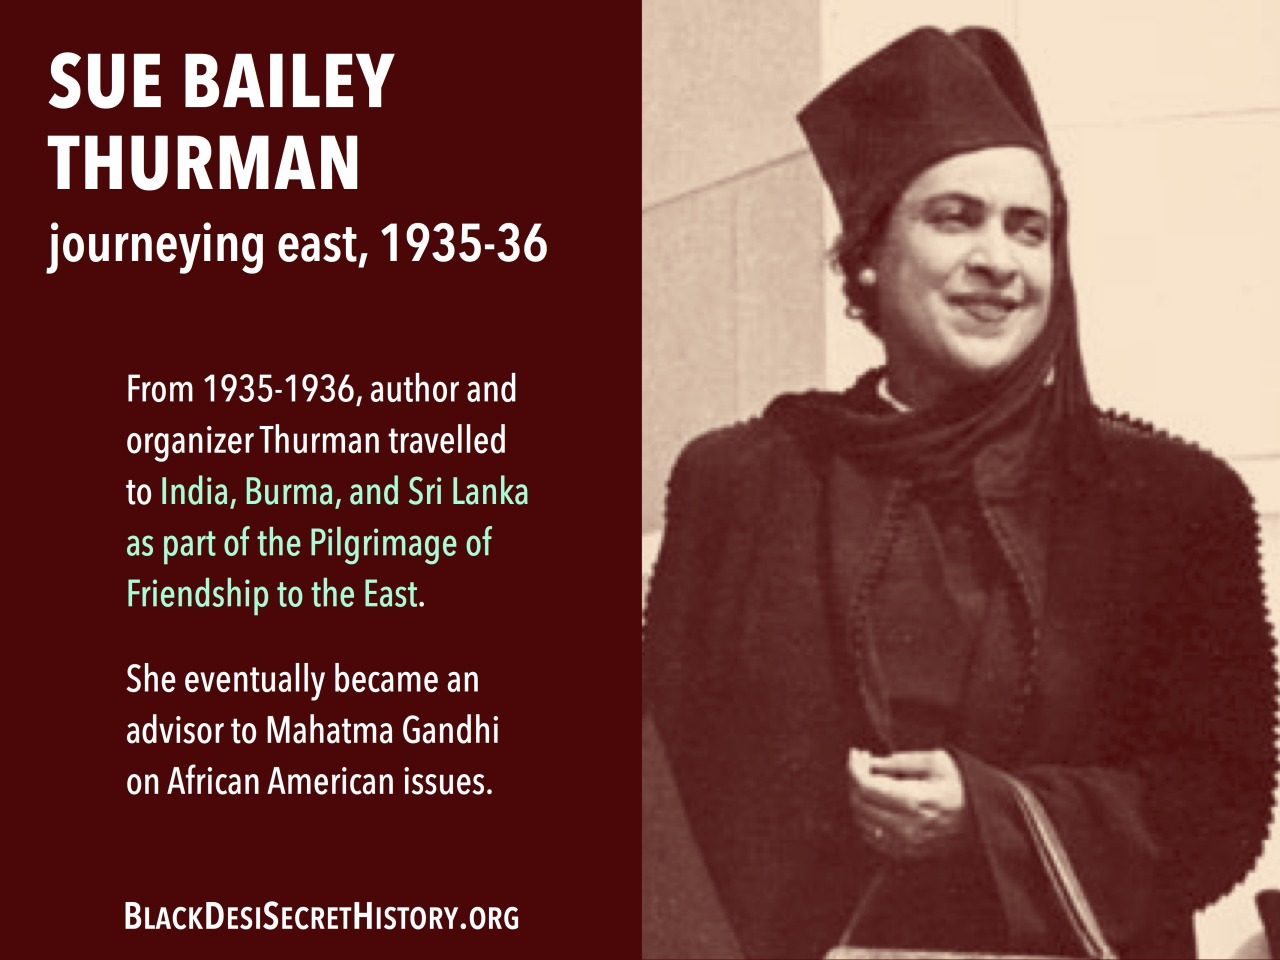 SUE BAILEY THURMAN, journeying east, 1935-36: From 1935-1936, author and organizer Thurman travelled to India, Burma, and Sri Lanka as part of the Pilgrimage of Friendship to the East. She eventually became an advisor to Mahatma Gandhi on African American issues.